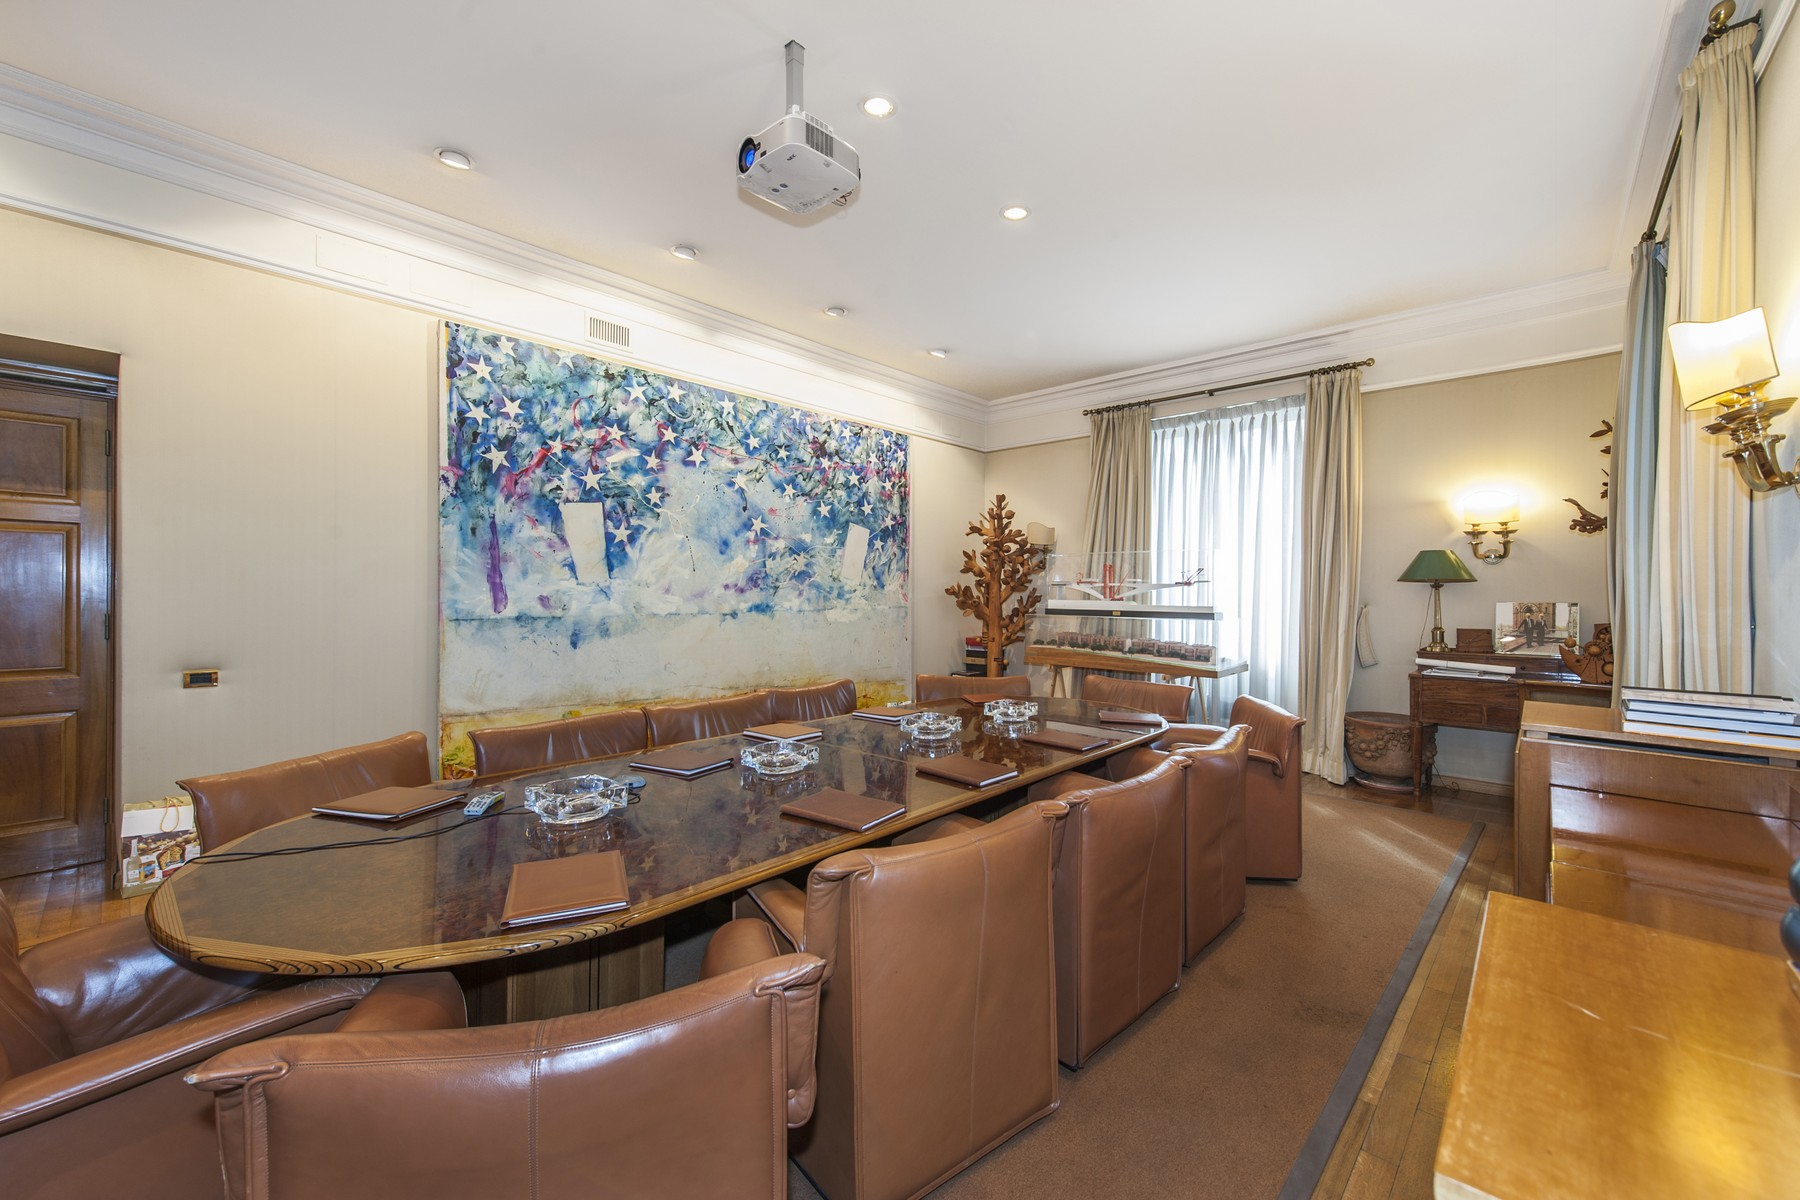 Apartamento por un Alquiler en Executive Offices in the Parioli neighbourhood Via Antonio Stoppani Rome, Roma 00197 Italia